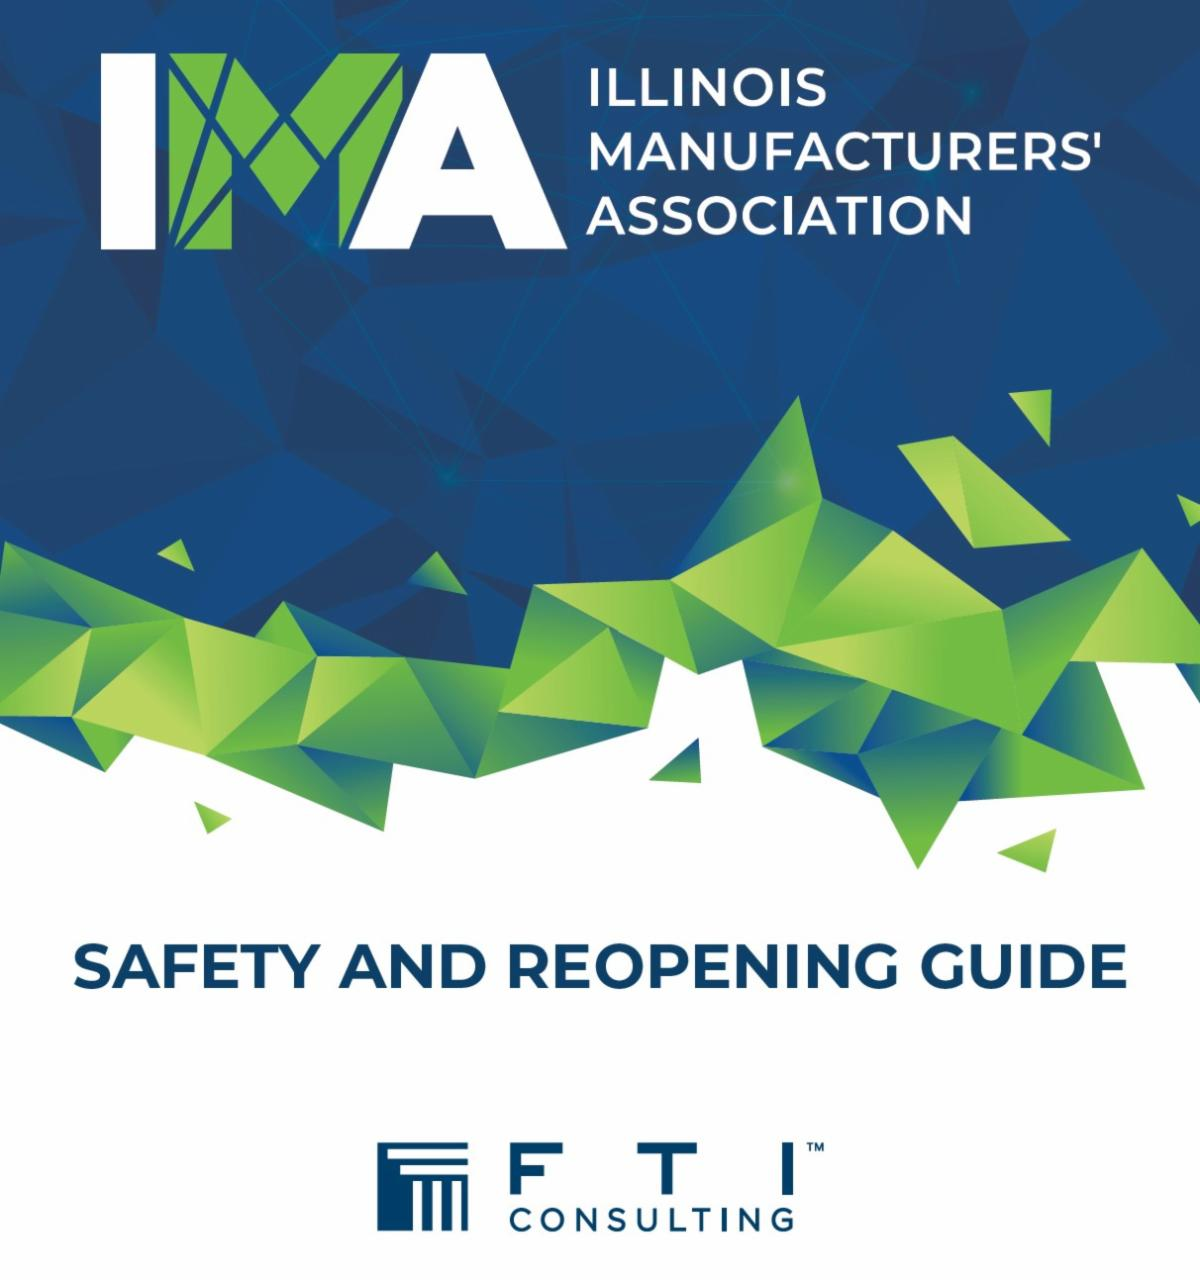 IMA Safety and Reopening Guide (PDF)